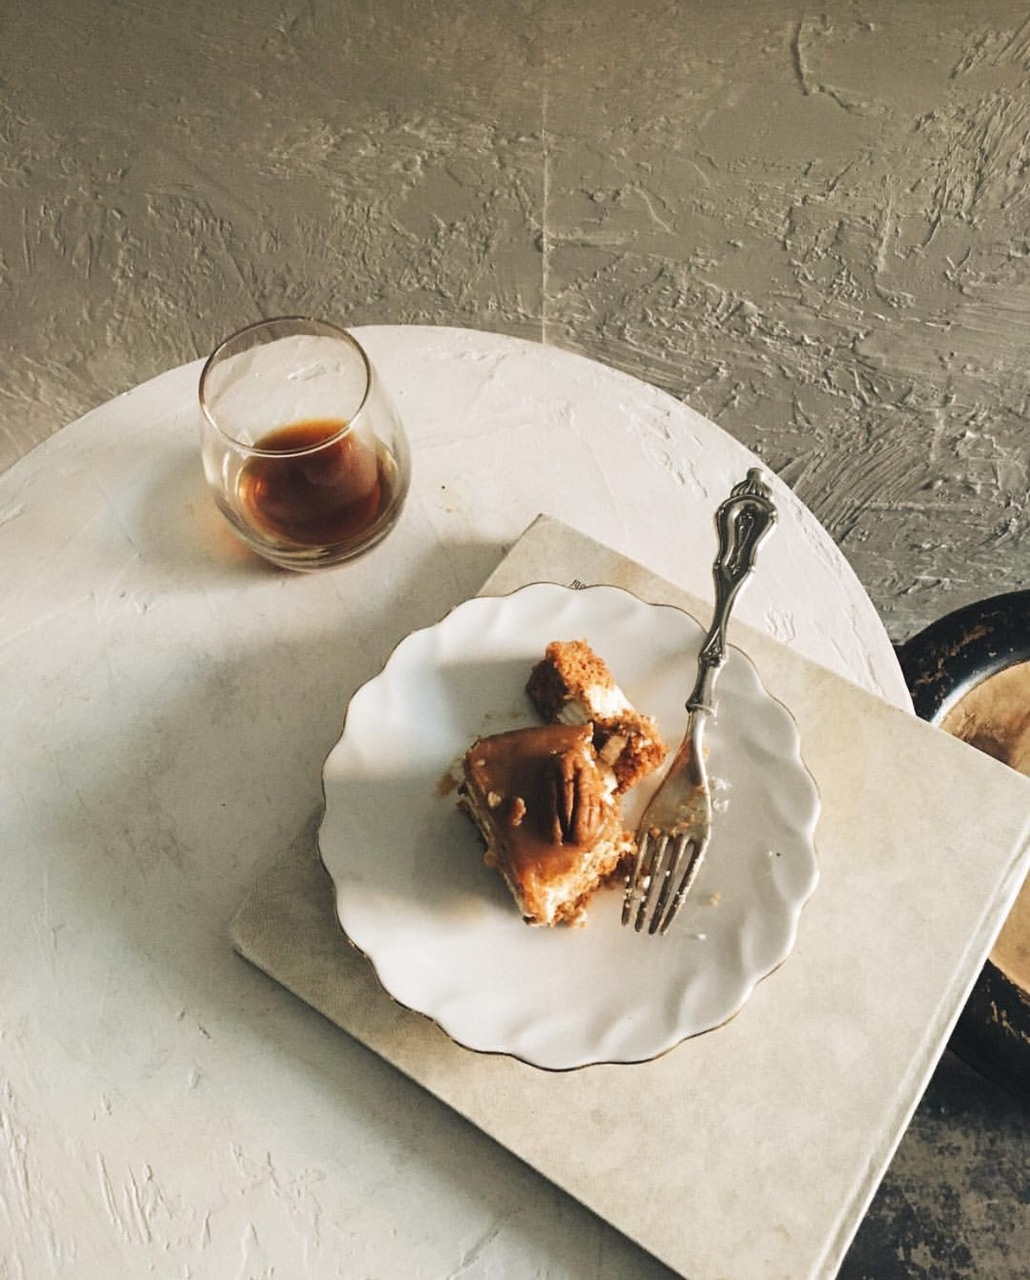 espresso, fork, morning inspiration and pastries